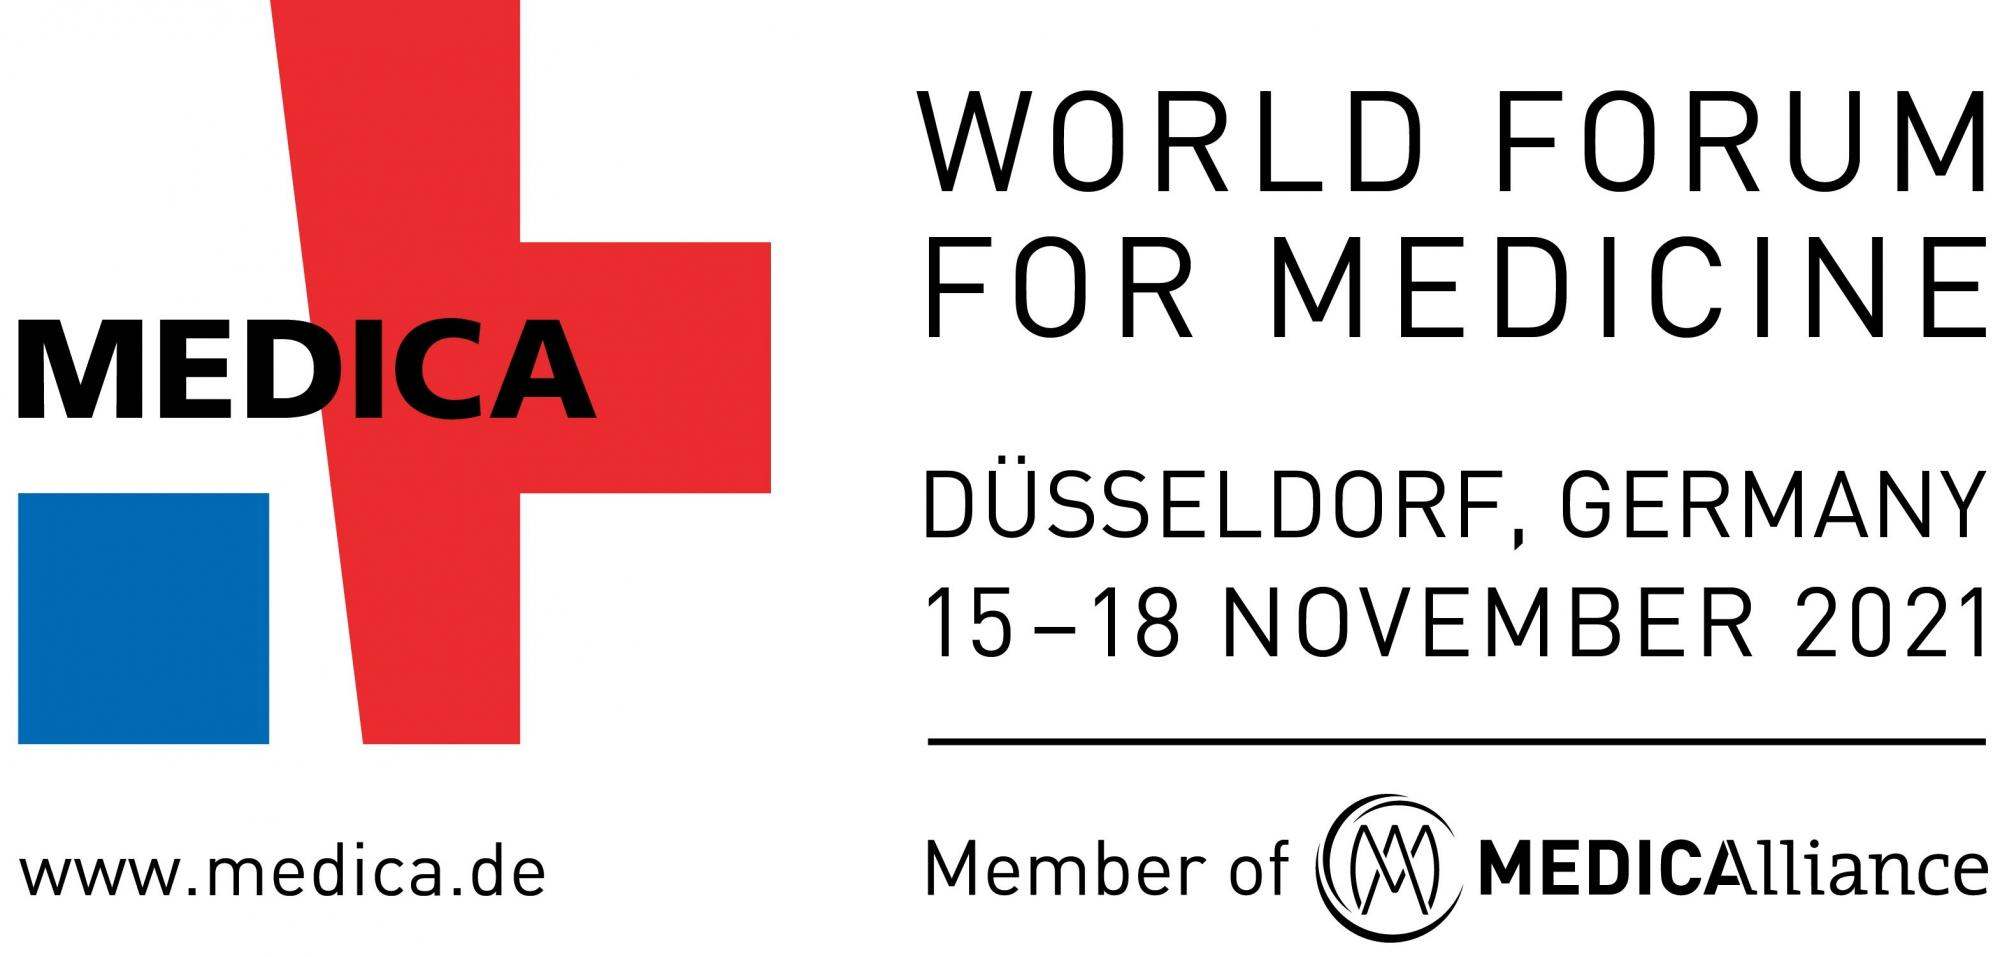 Meet Alerta Medical at Medica Dusseldorf